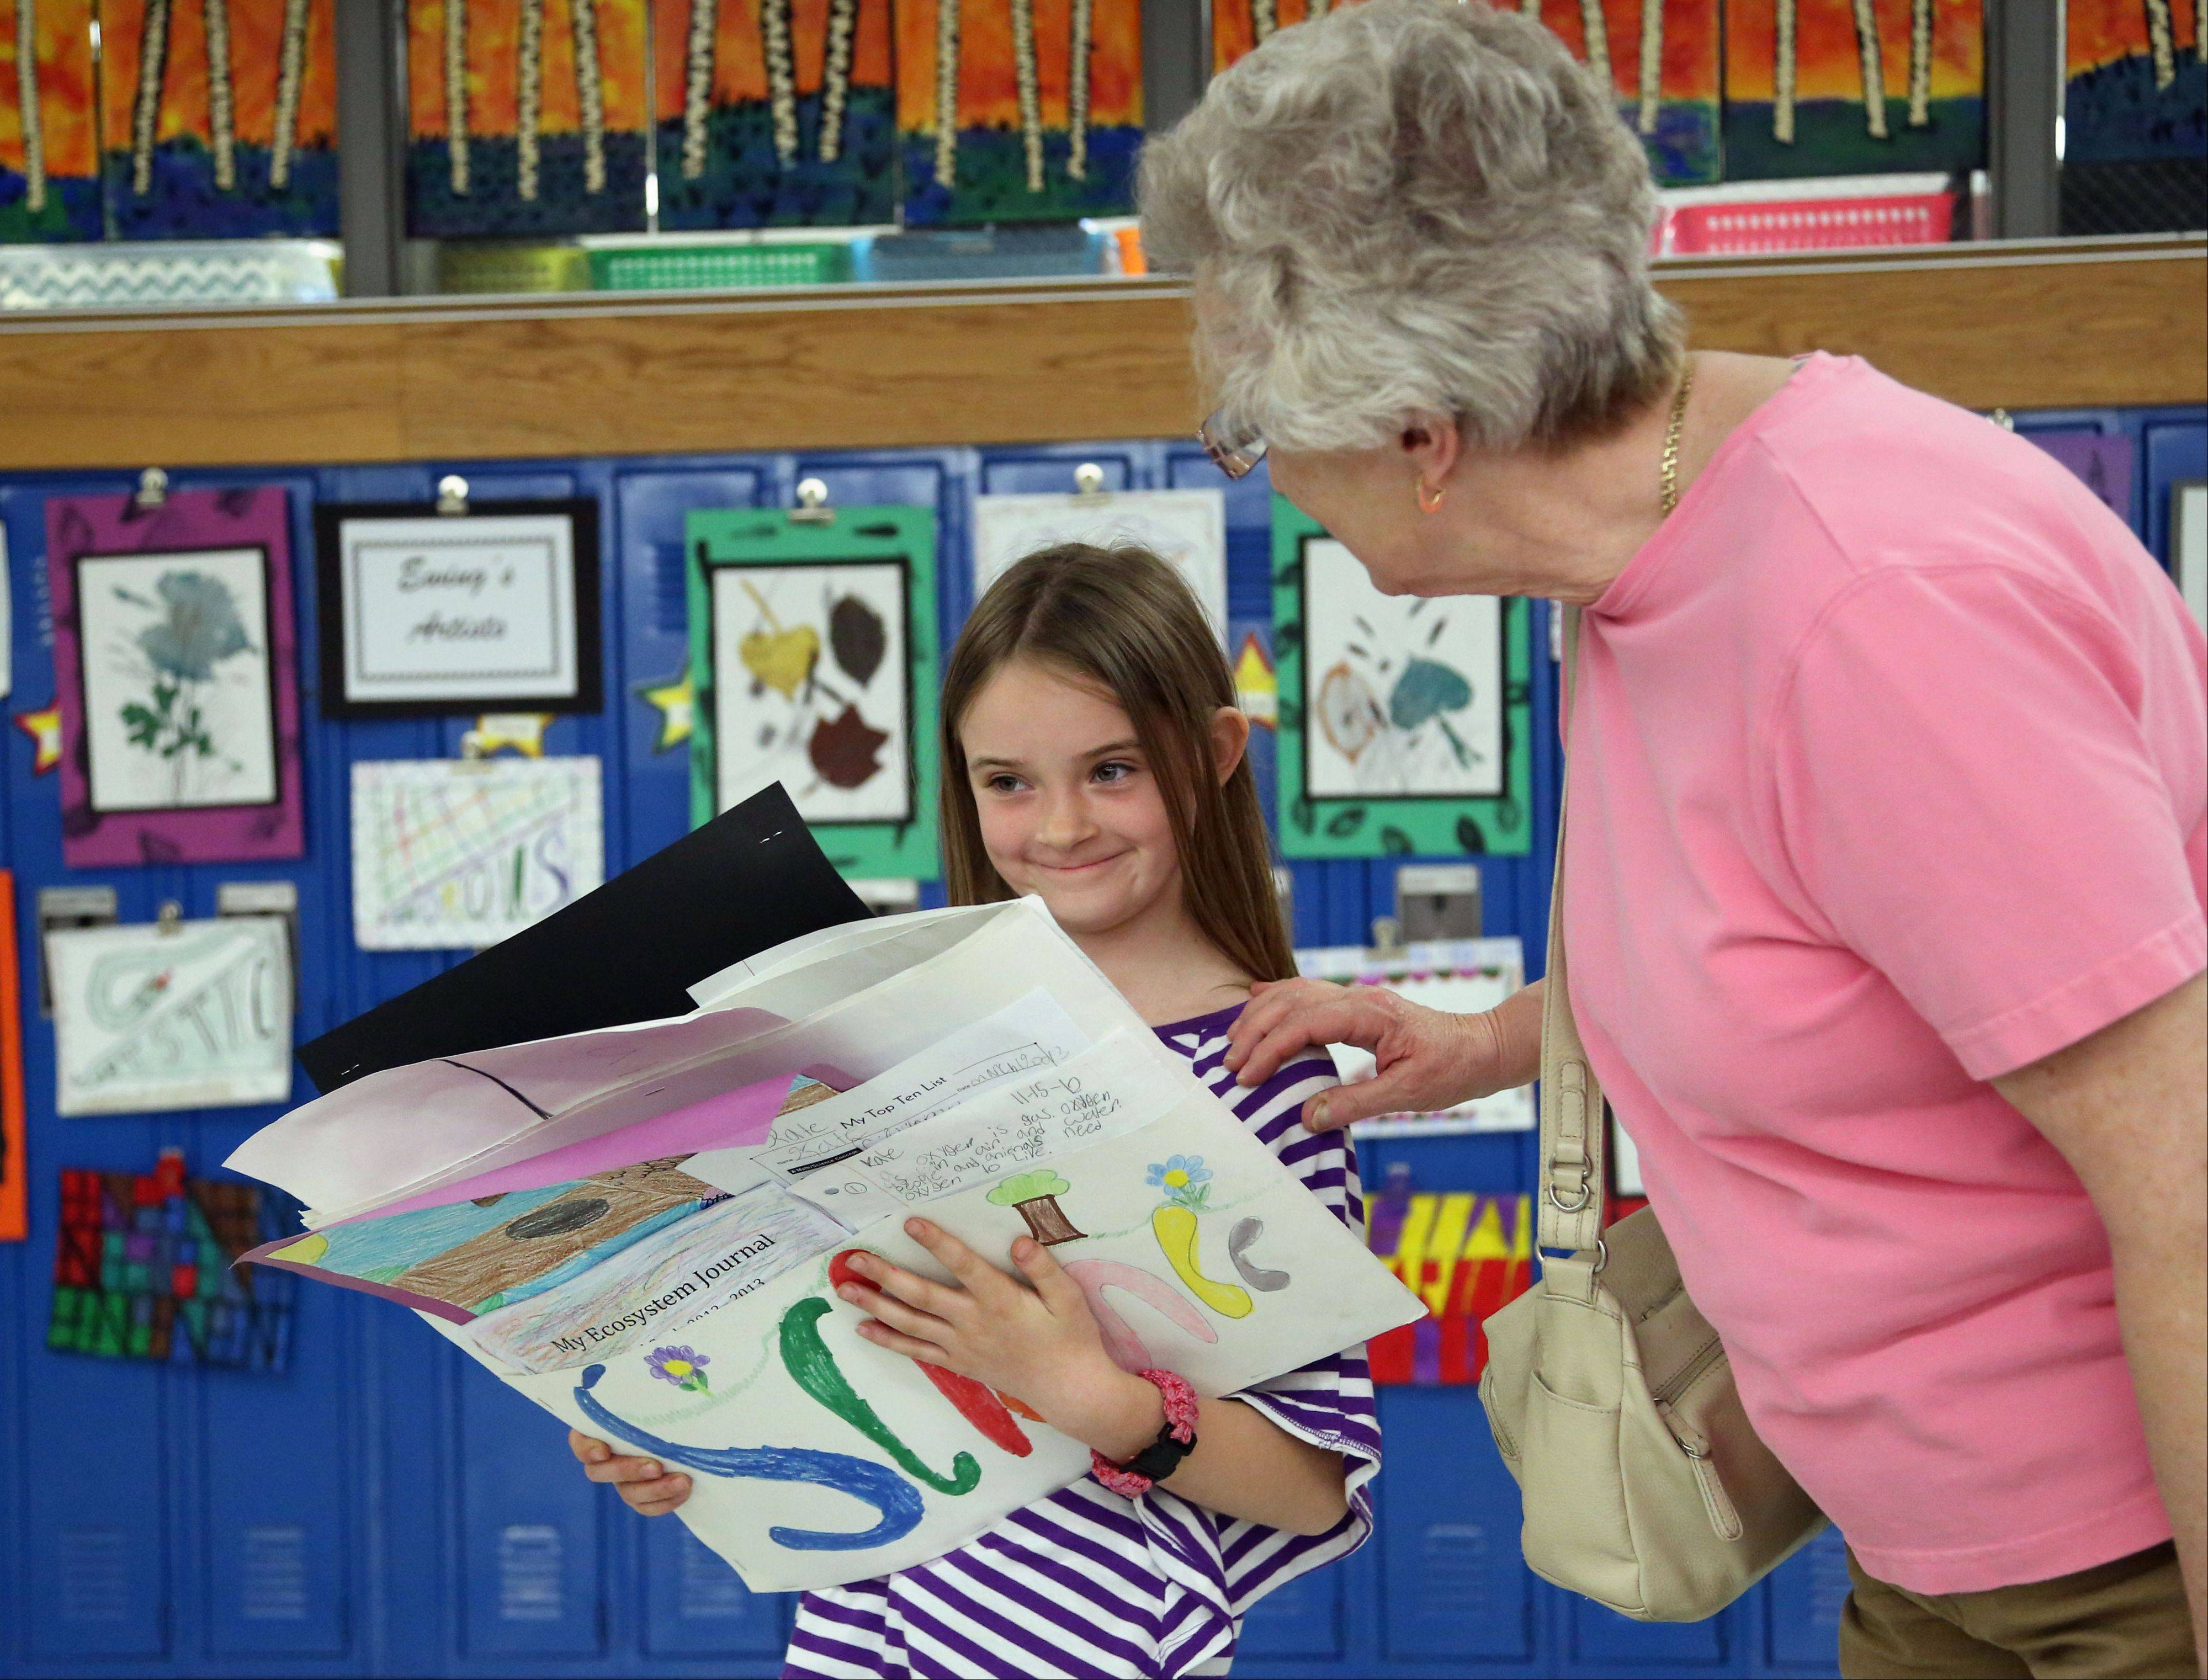 Third grader Kate Driscoll, left, carries her art projects with her grandmother Bjorg Davis, of Mundelein, during an event called Learning and the Arts at Mechanics Grove School Wednesday.